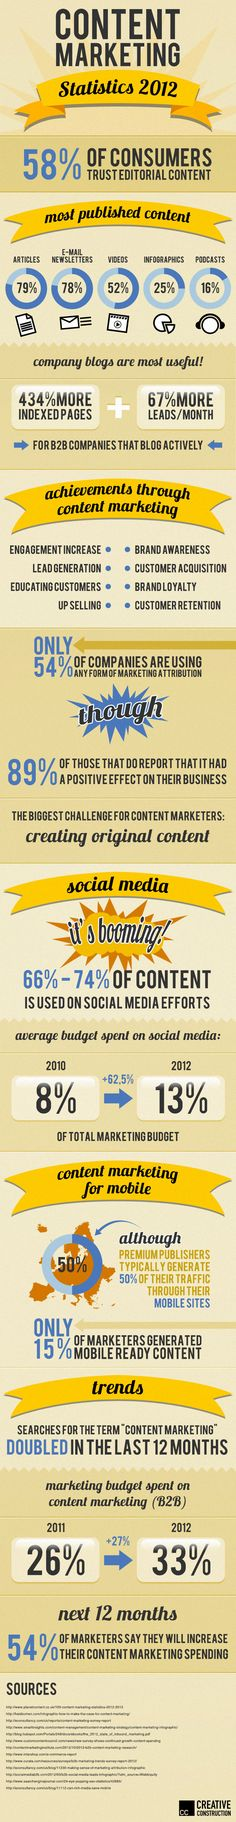 Interesting content marketing infographic.. #marketing #content #infographic